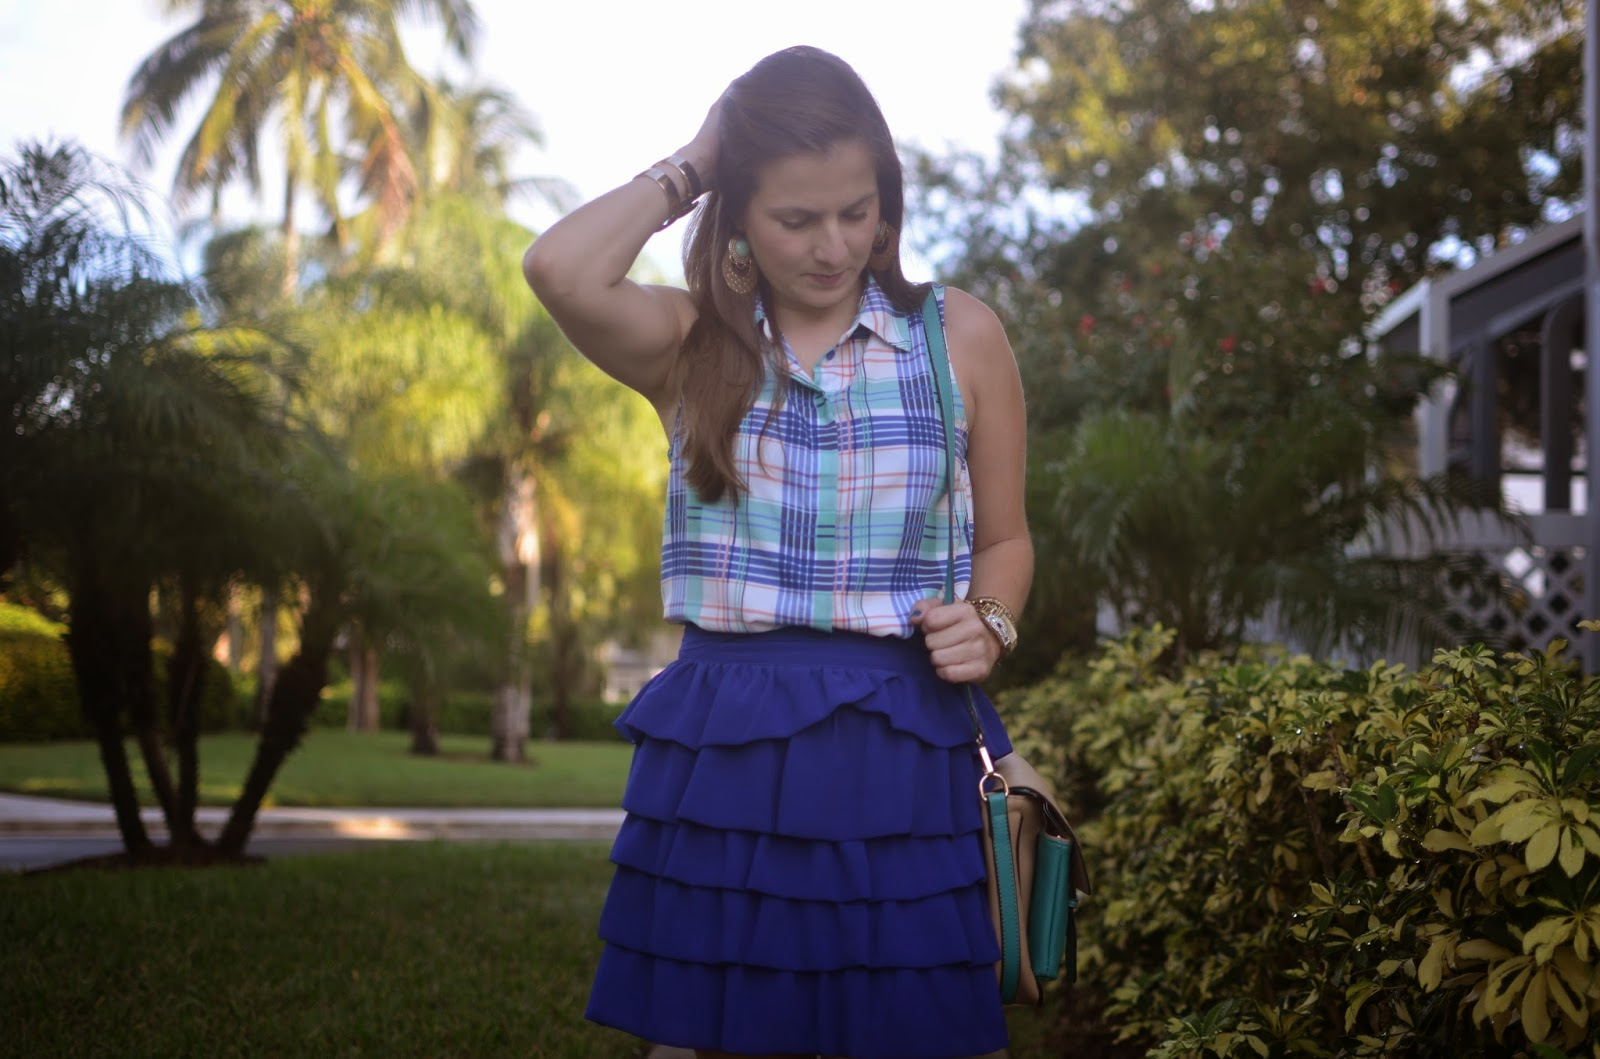 ruffle skirt - check top - cross body - flats